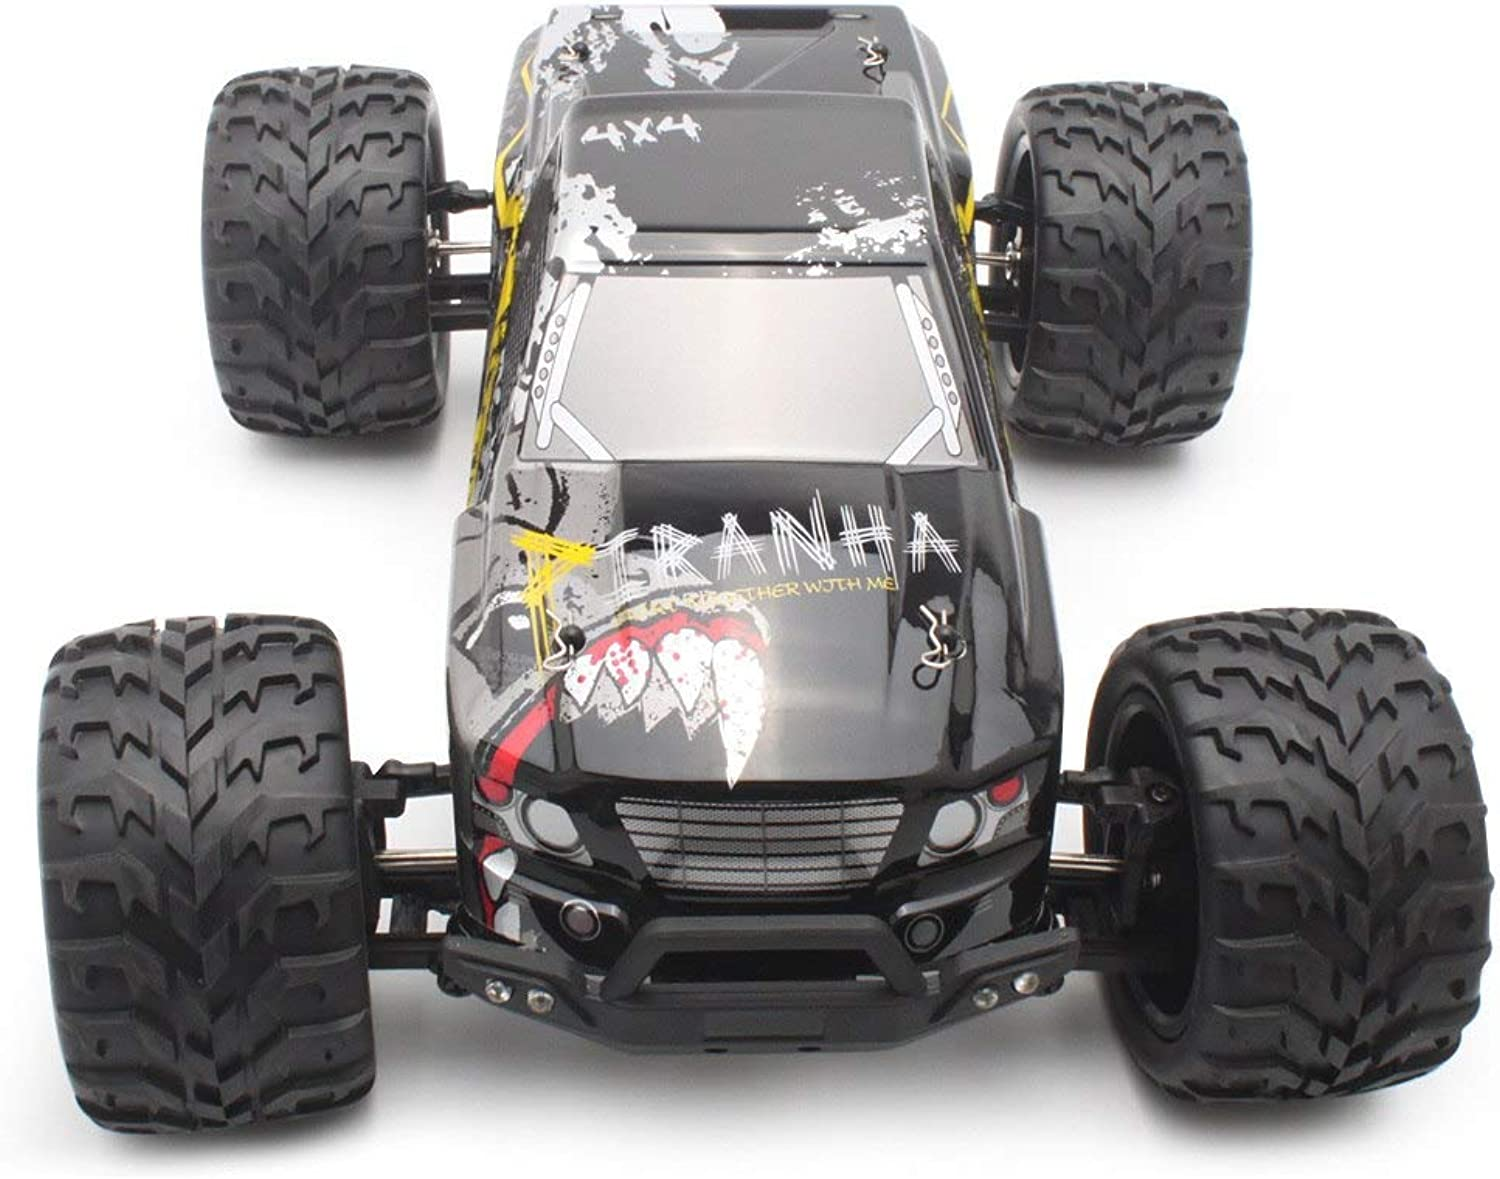 Generic Pxtoys 9200 Rc Car 1 12 Scale 2.4g Electric 4wd Remote Control Car 40km h High Speed Rc Climbing Car OffRoad Vehicle Truck Black